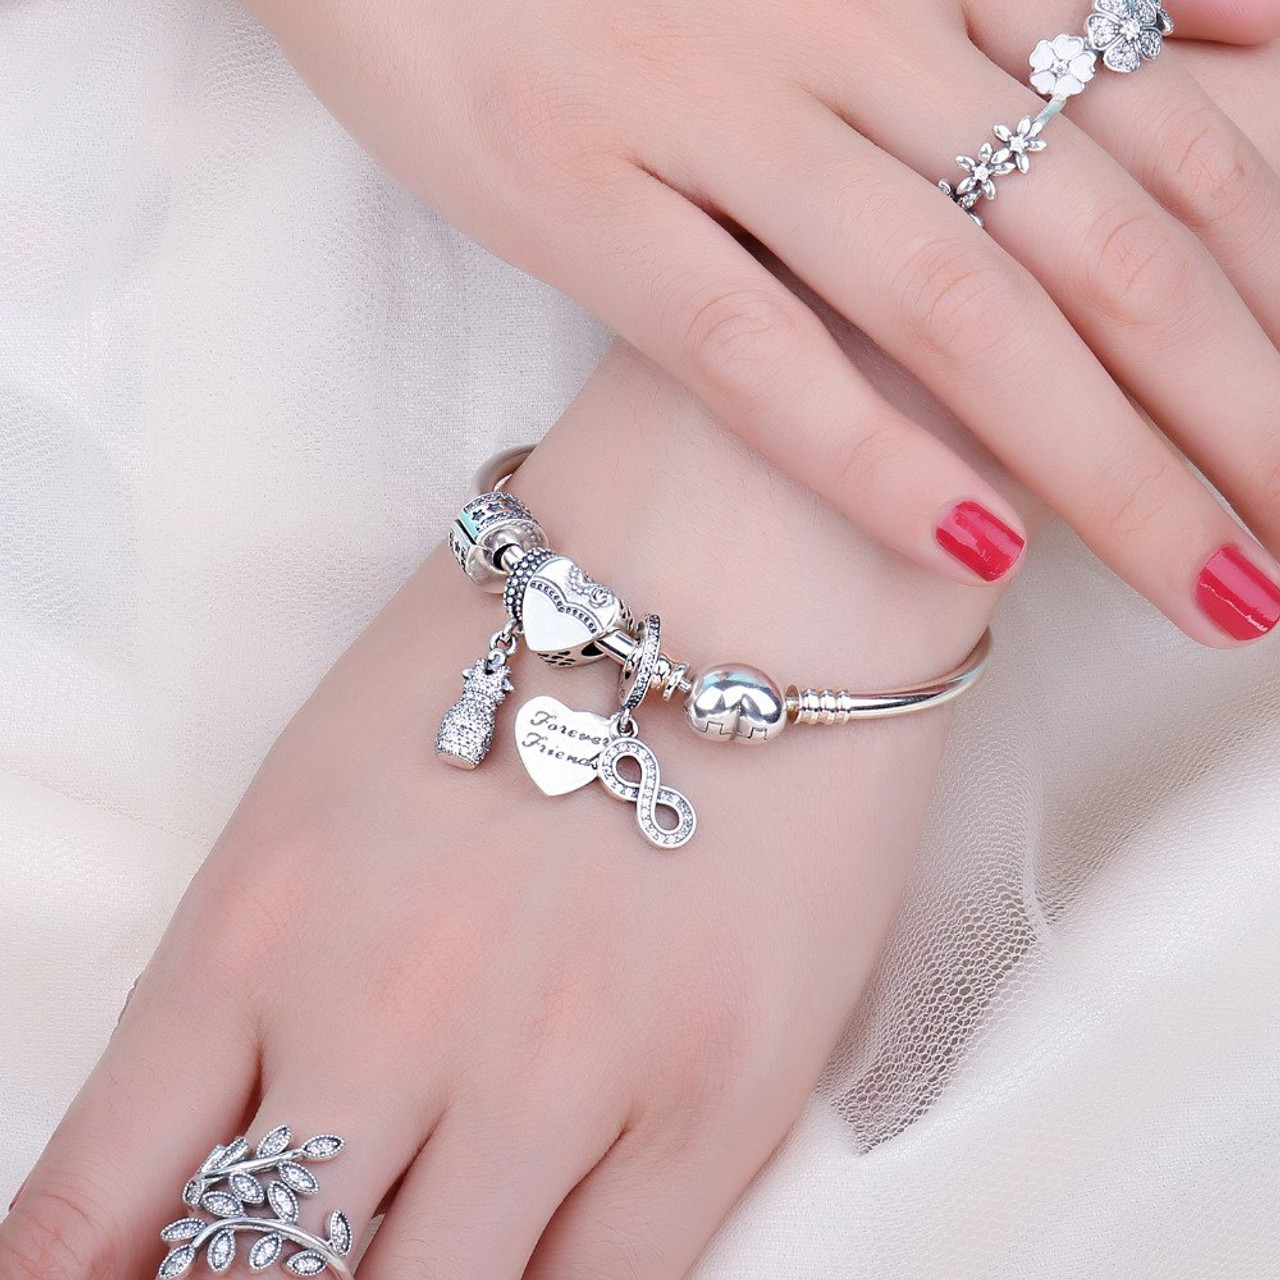 747ea57d9da9 ... Jewelrypalace 925 Sterling Silver Infinity Friendship Cubic Zirconia  Charm Bracelets Gifts For Women Trendy Jewelry Nice ...